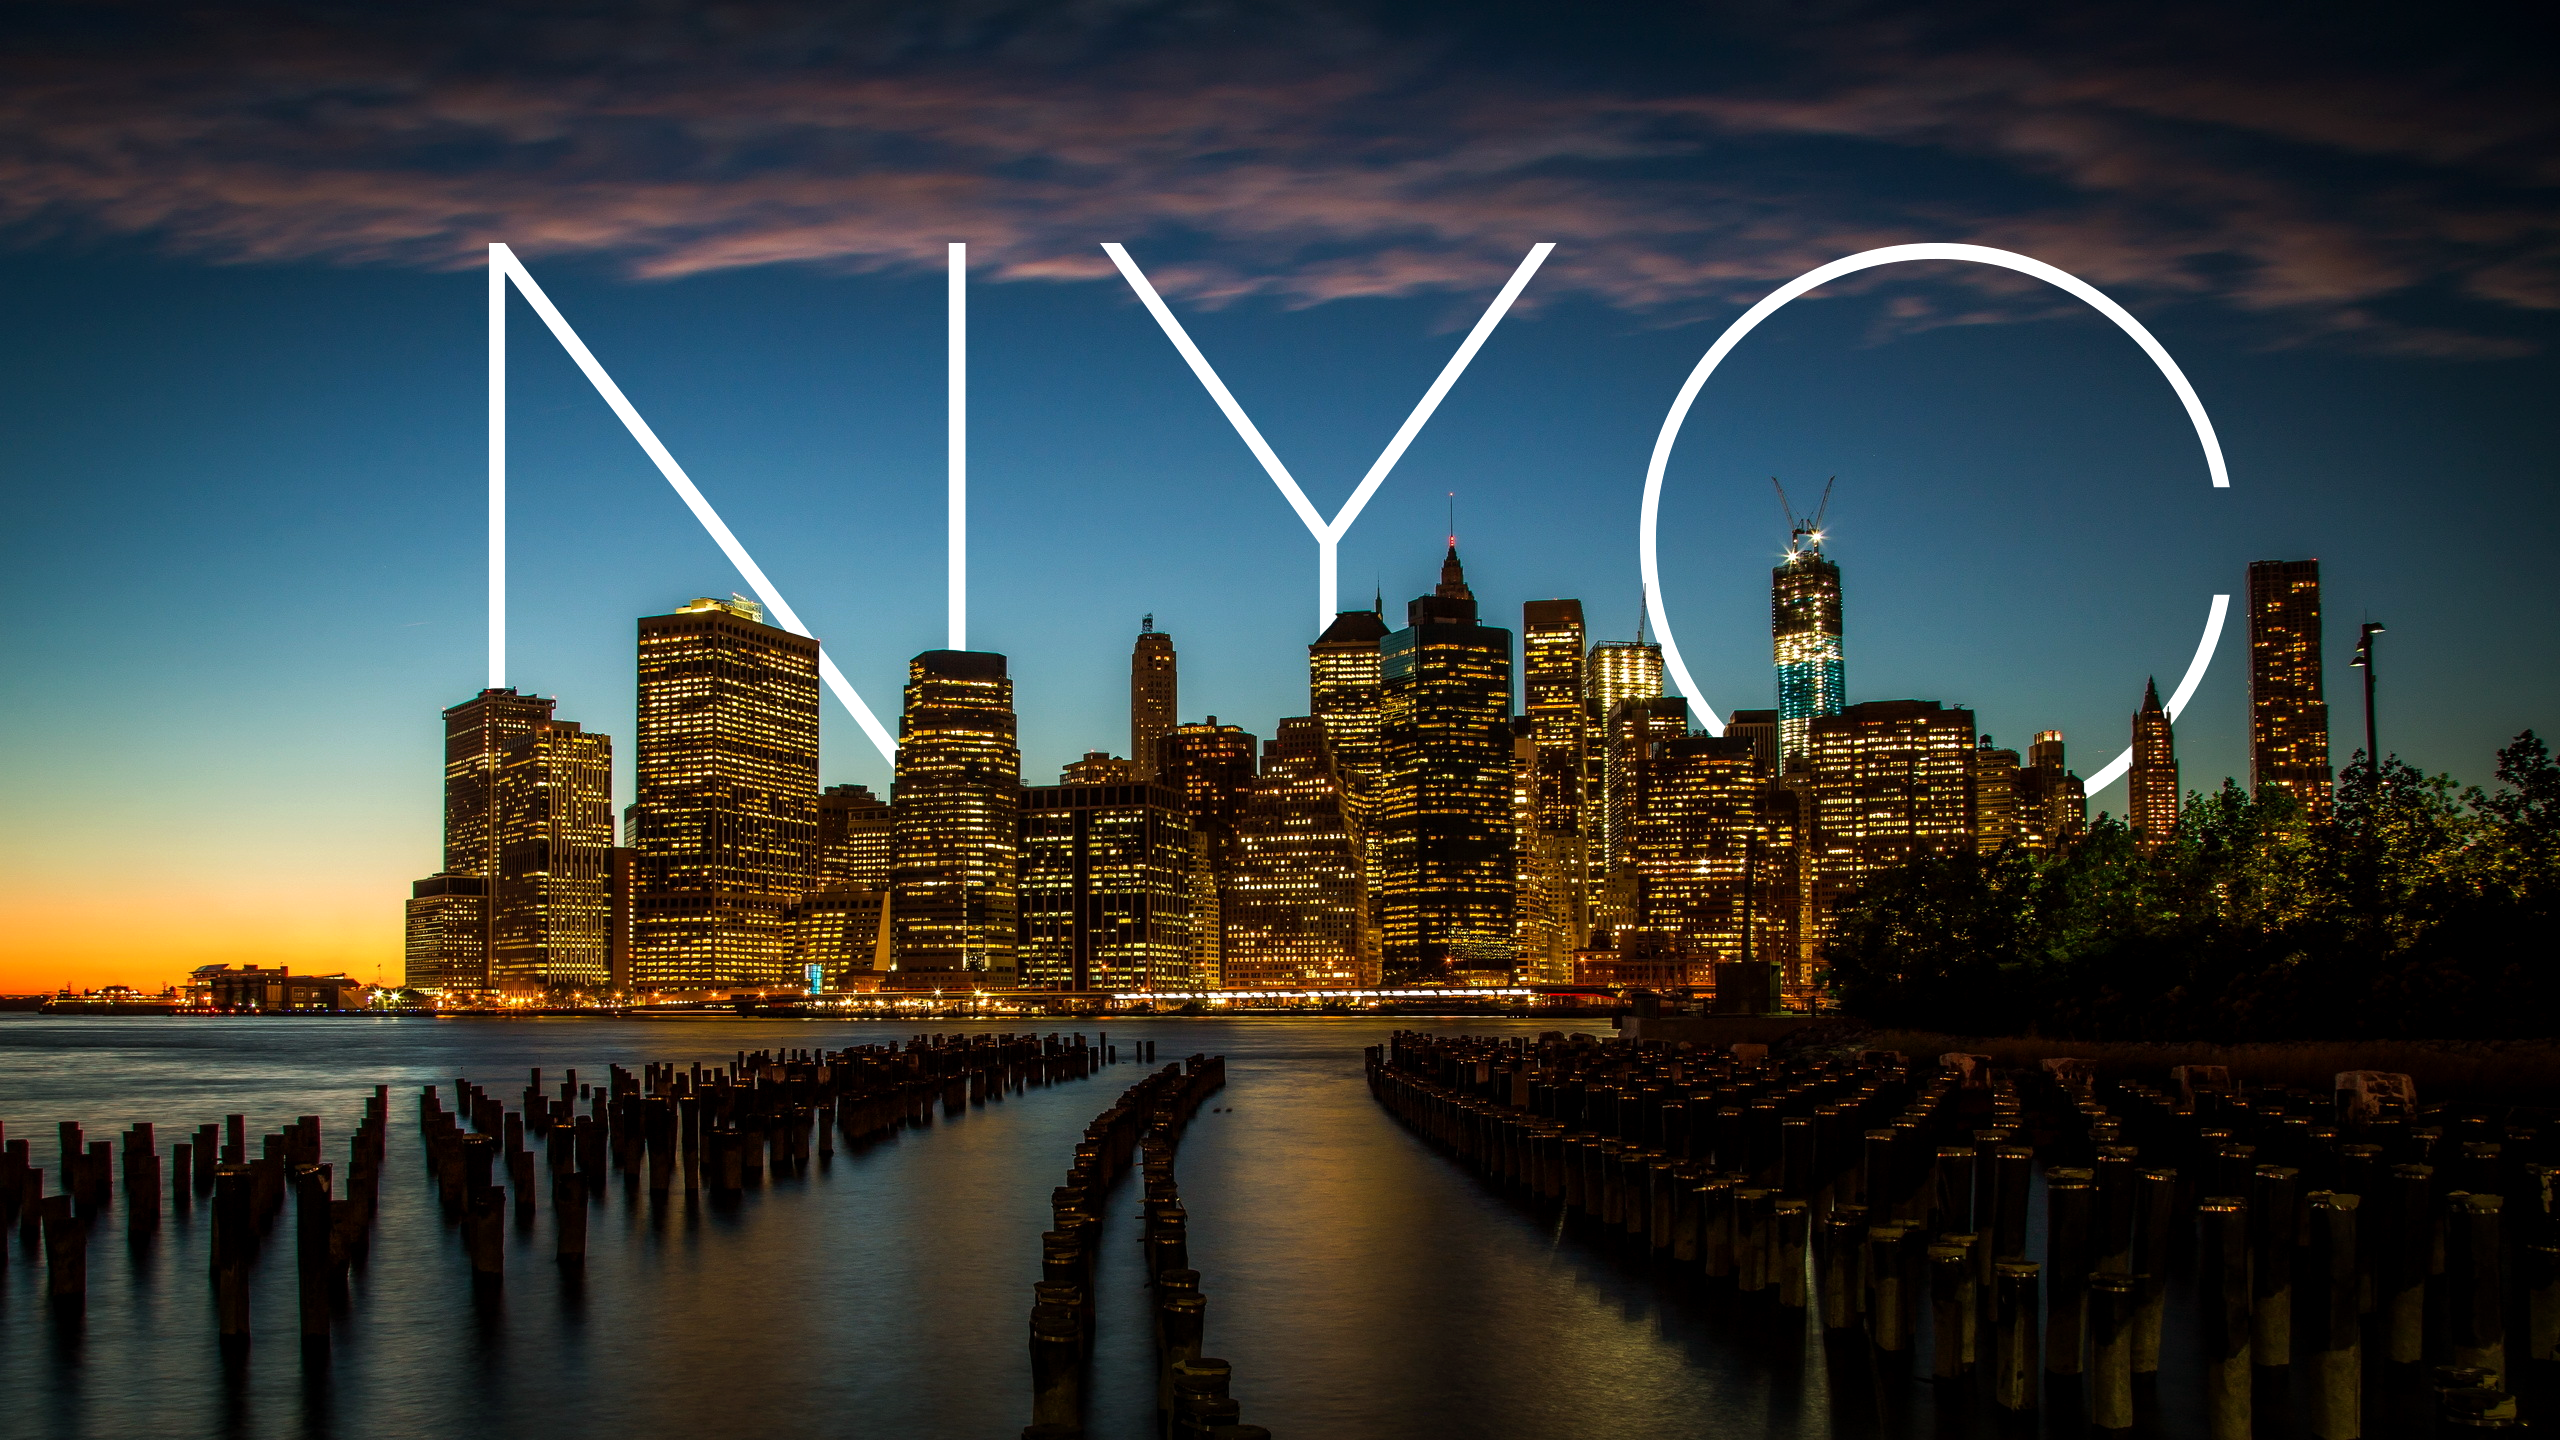 Nyc Wallpapers | Top 95 Nyc Wallpapers